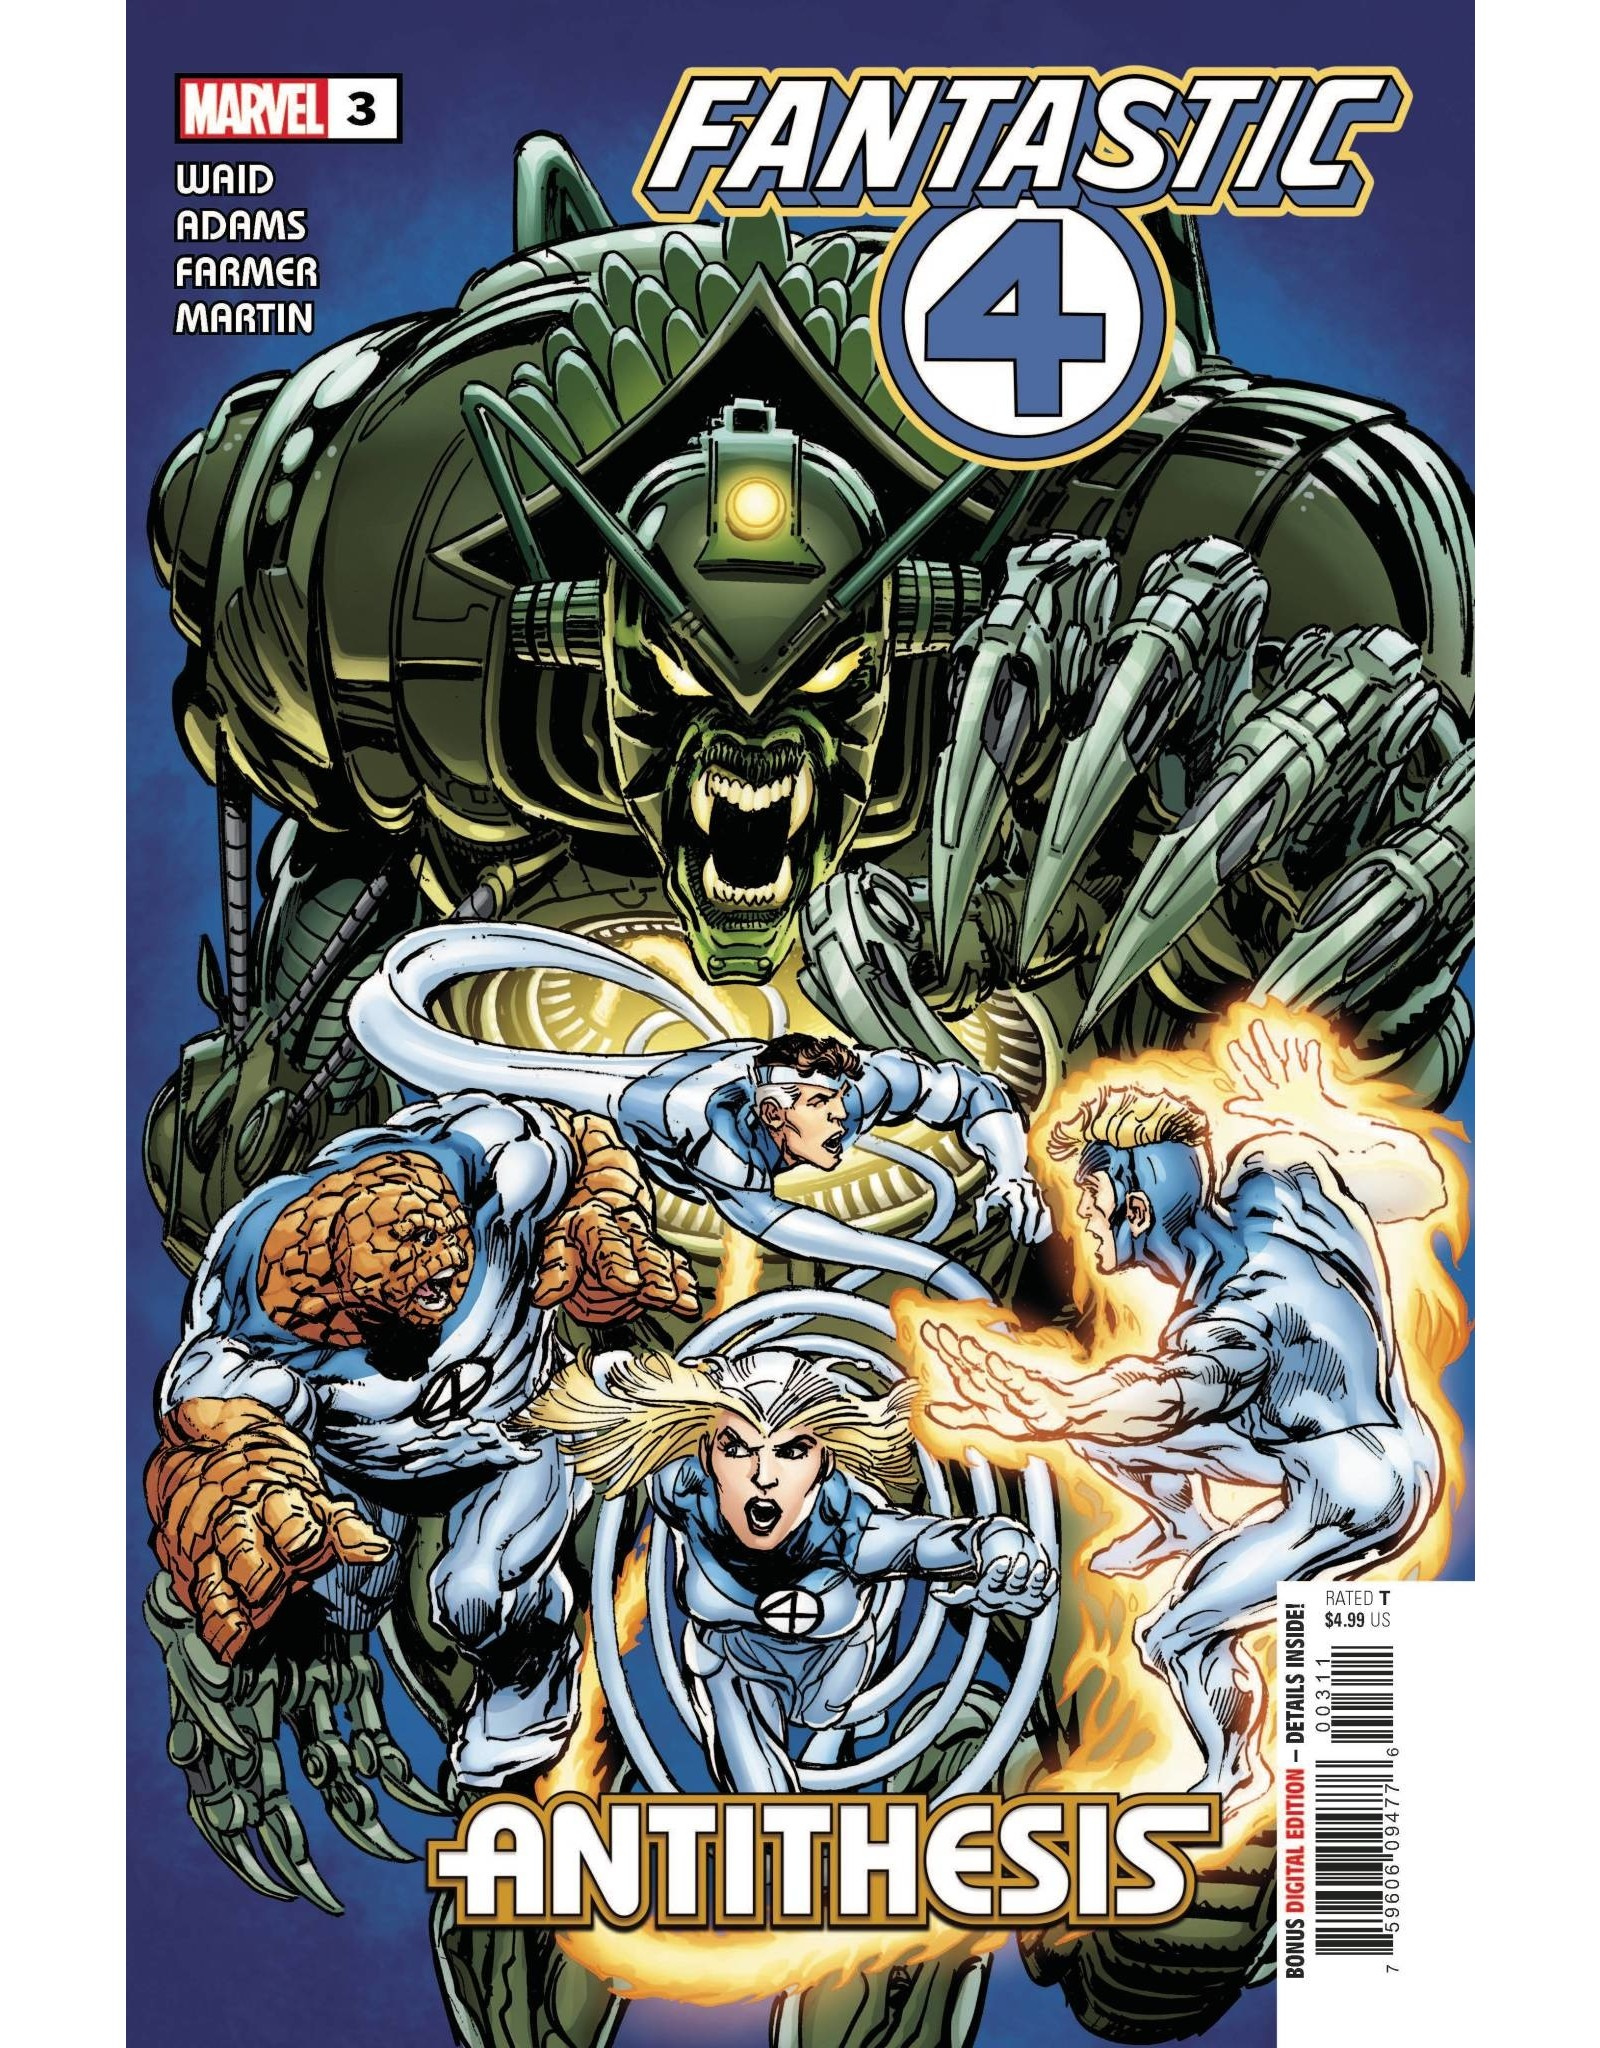 Marvel Comics FANTASTIC FOUR ANTITHESIS #3 (OF 4)